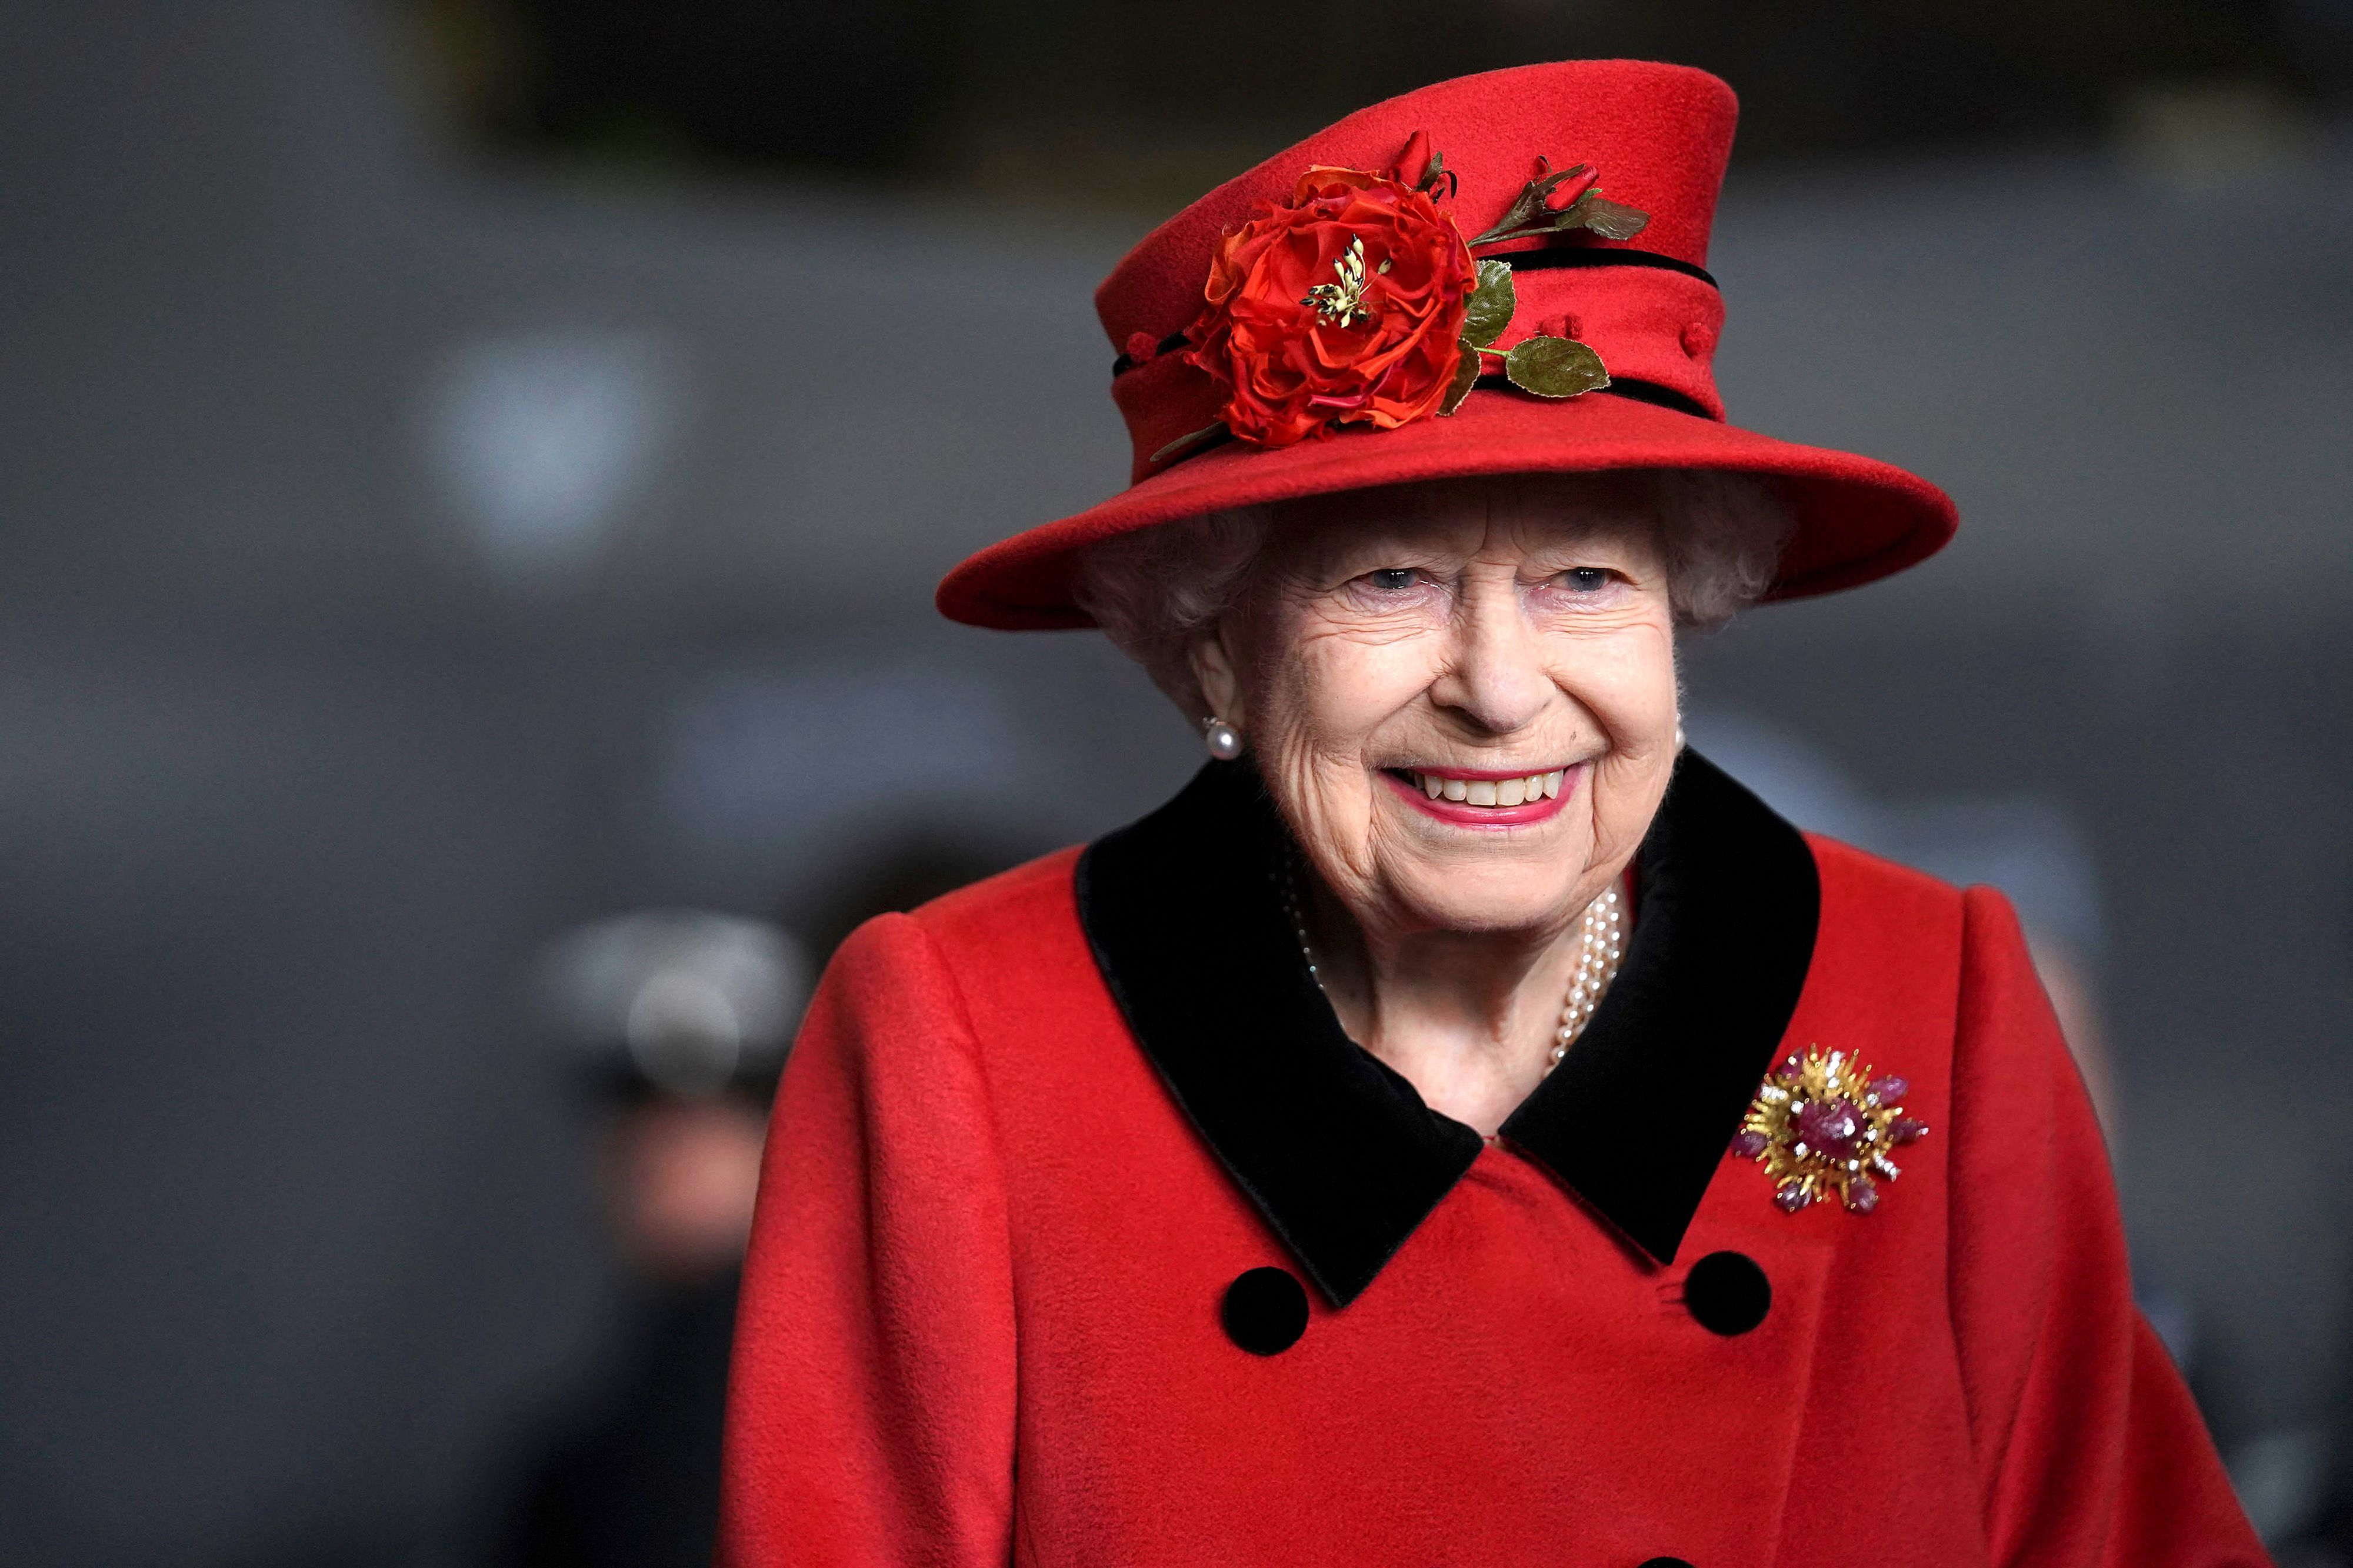 Queen Elizabeth II reacts during her visit to the aircraft carrier HMS Queen Elizabeth in Portsmouth, southern England on May 22, 2021 | Getty Images